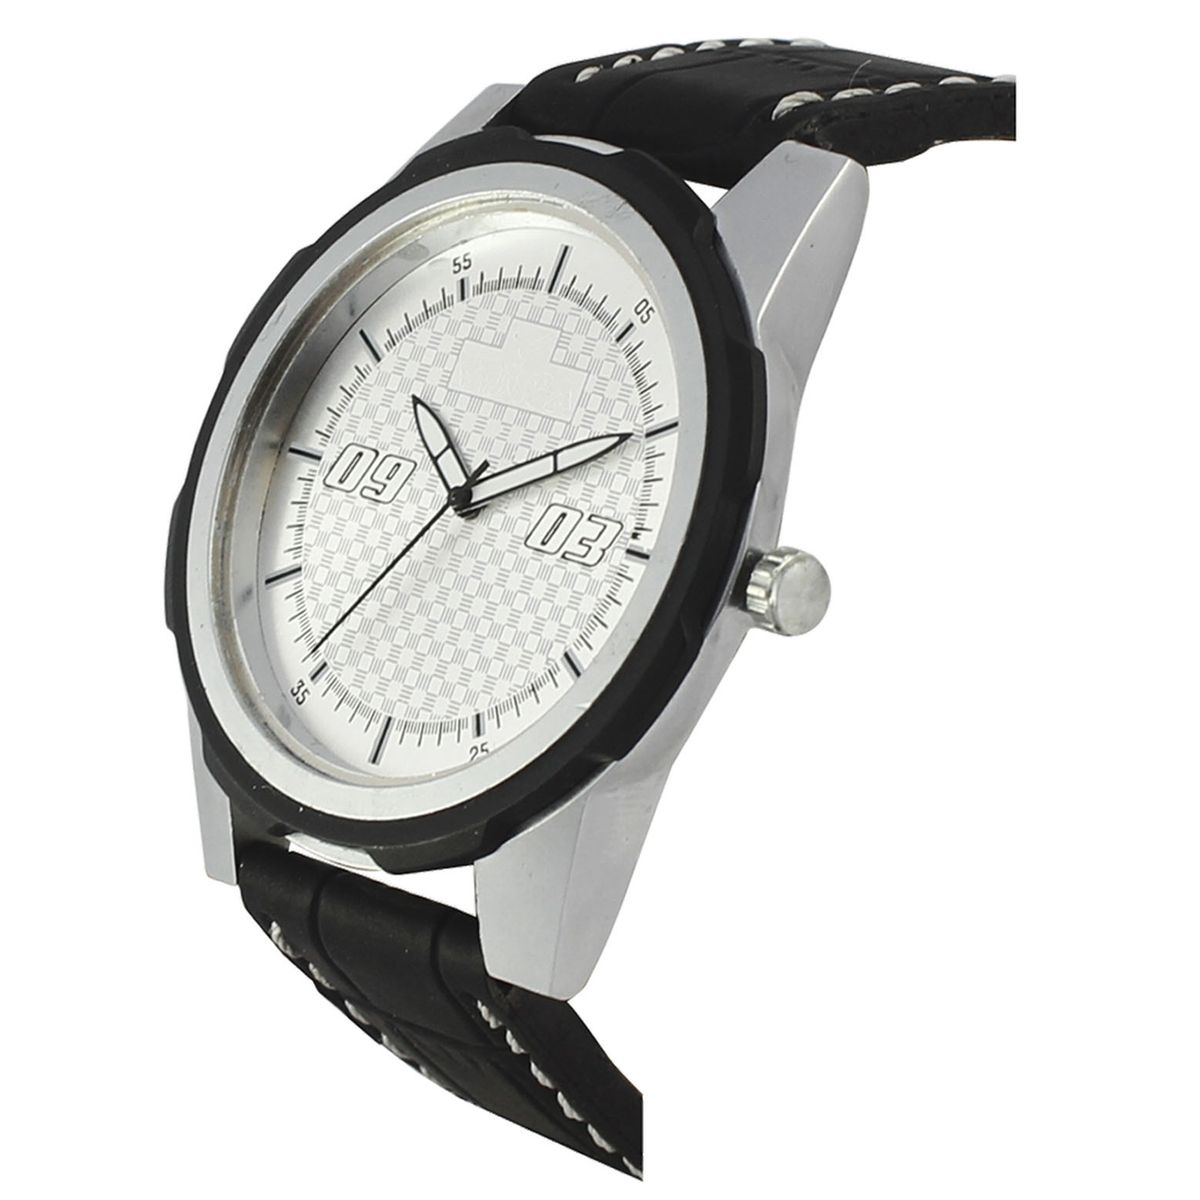 The Shopoholic Casual Analog Newest Arrival White Round Dial Black Leather Belt Watches For Boys-Men Watch